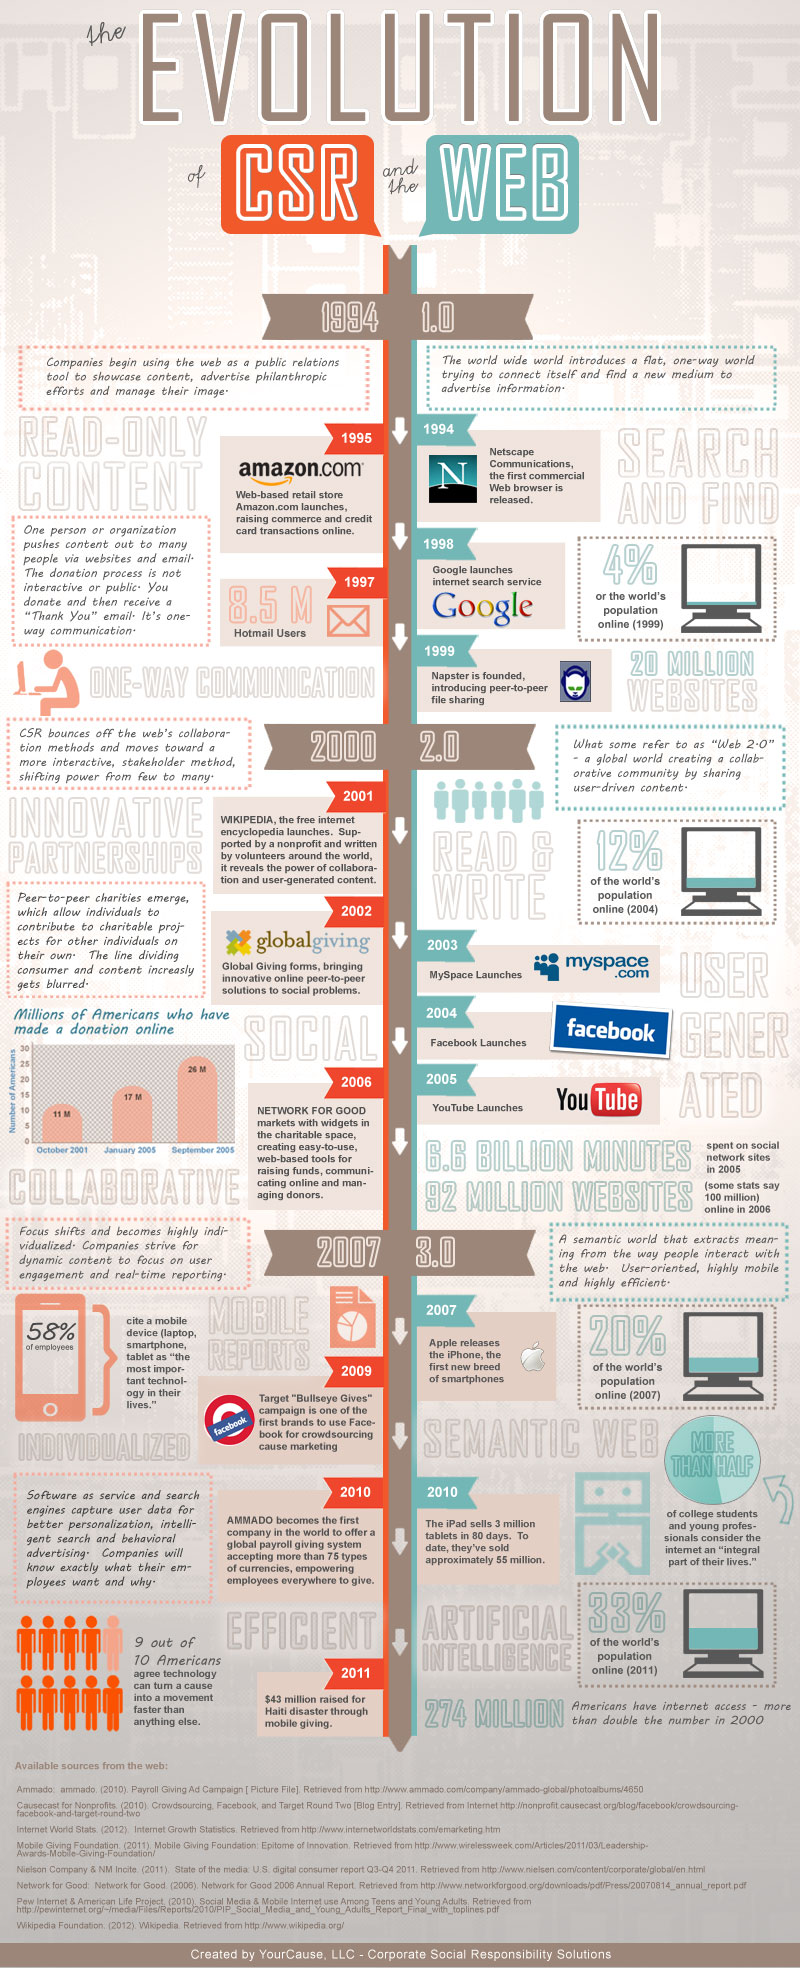 guide to corporate social responsibility part  the evolution of csr and the web infographic image source your cause